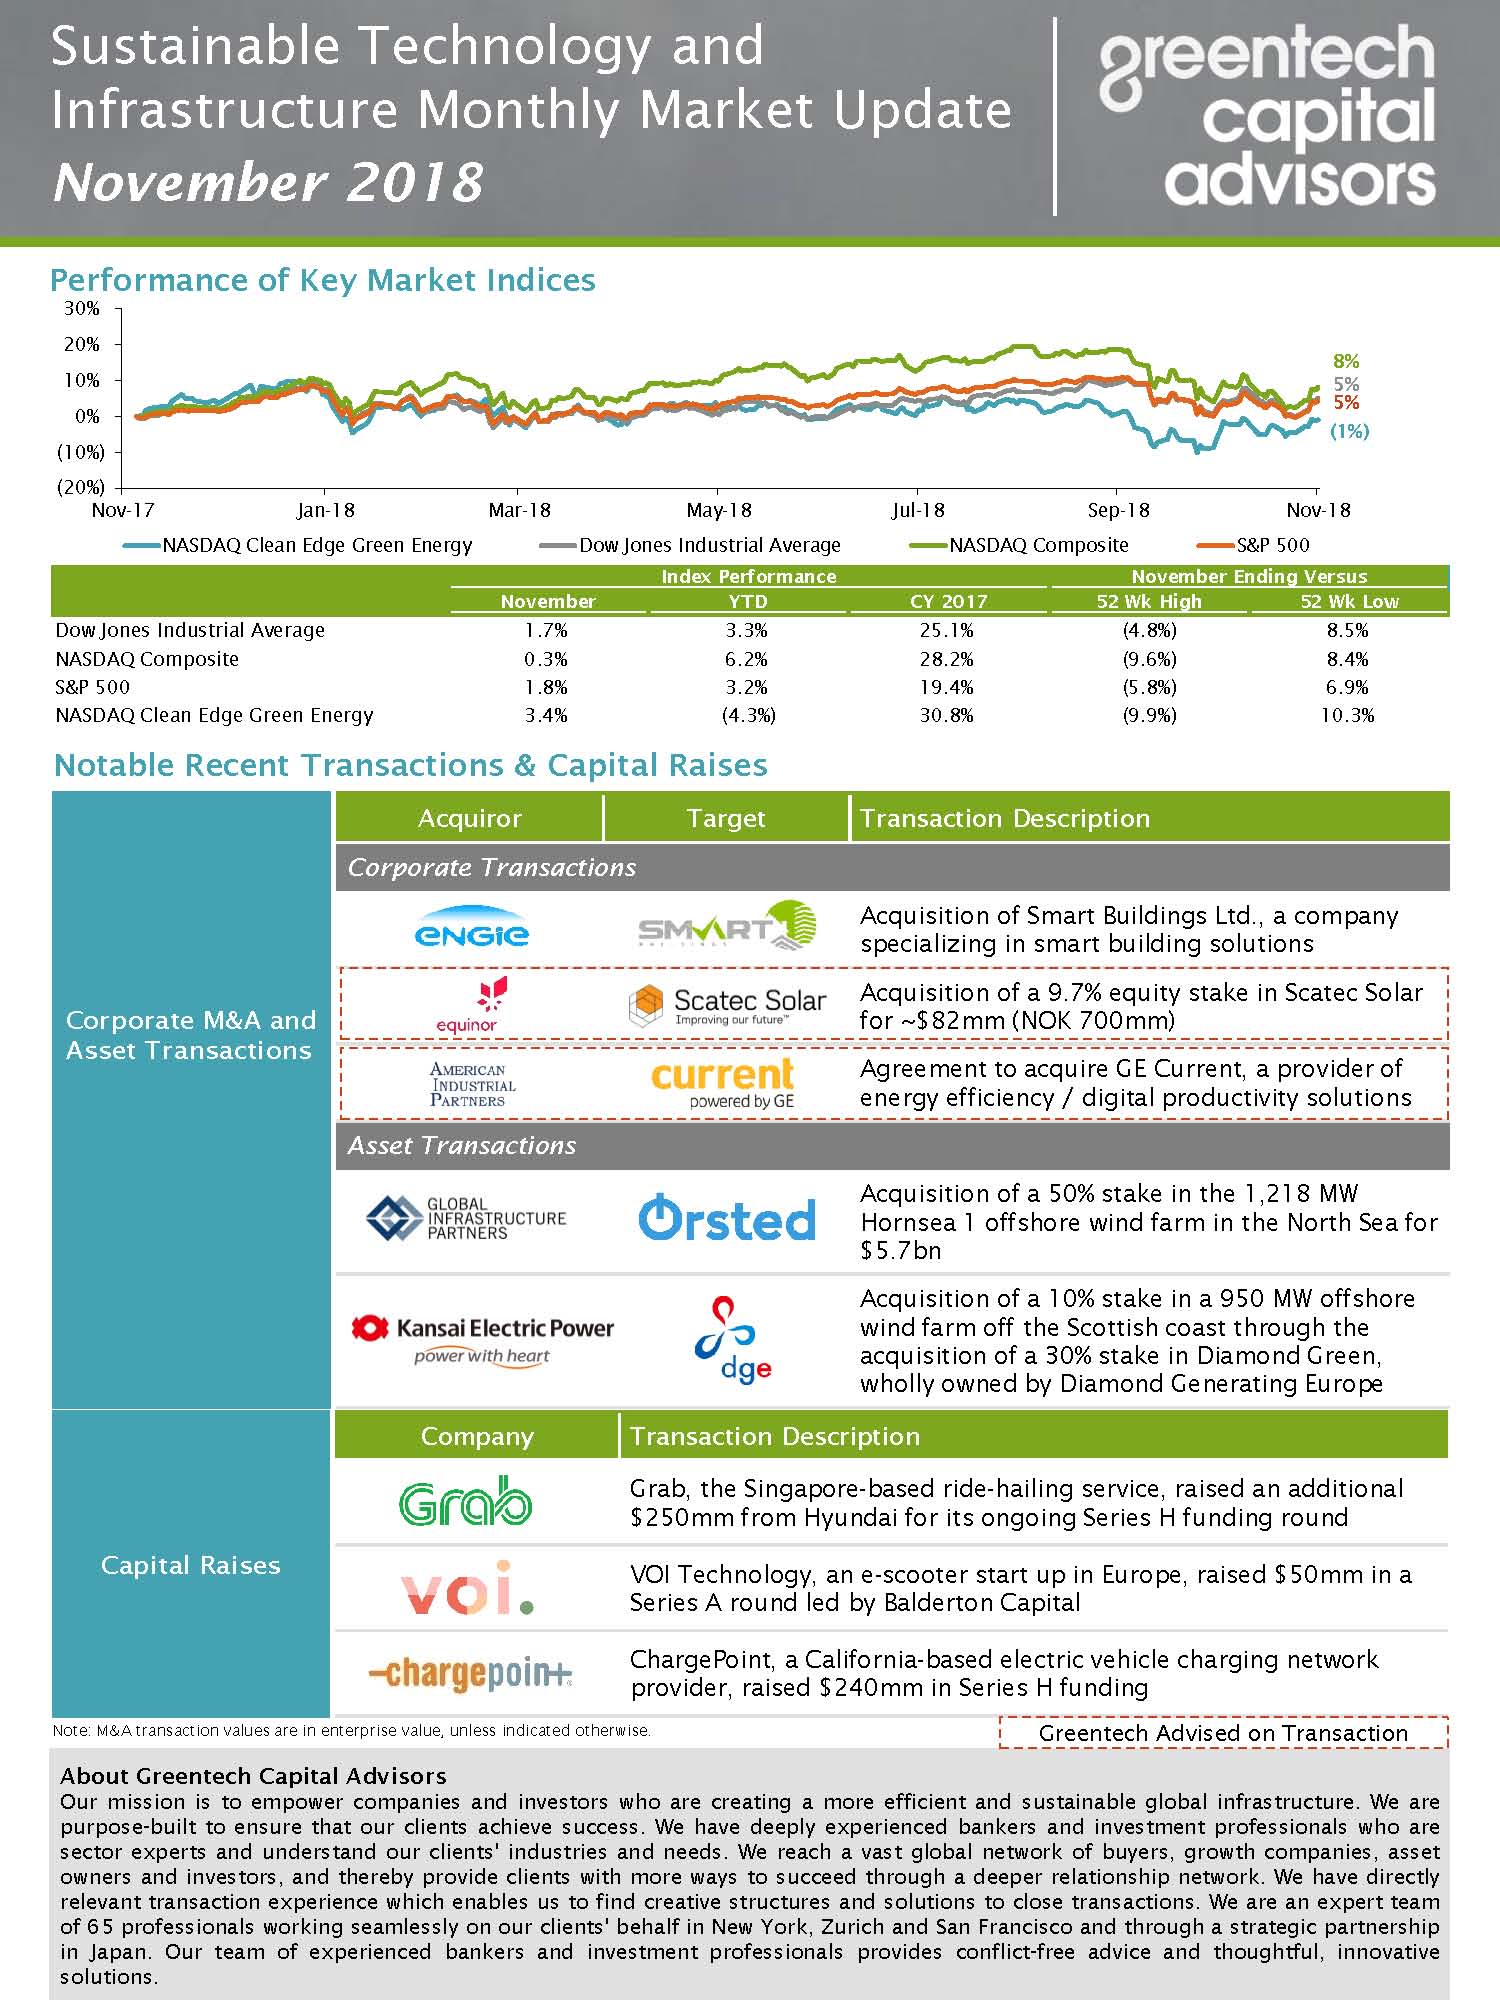 Sustainable Investing Monthly Market Update - Nov 2018